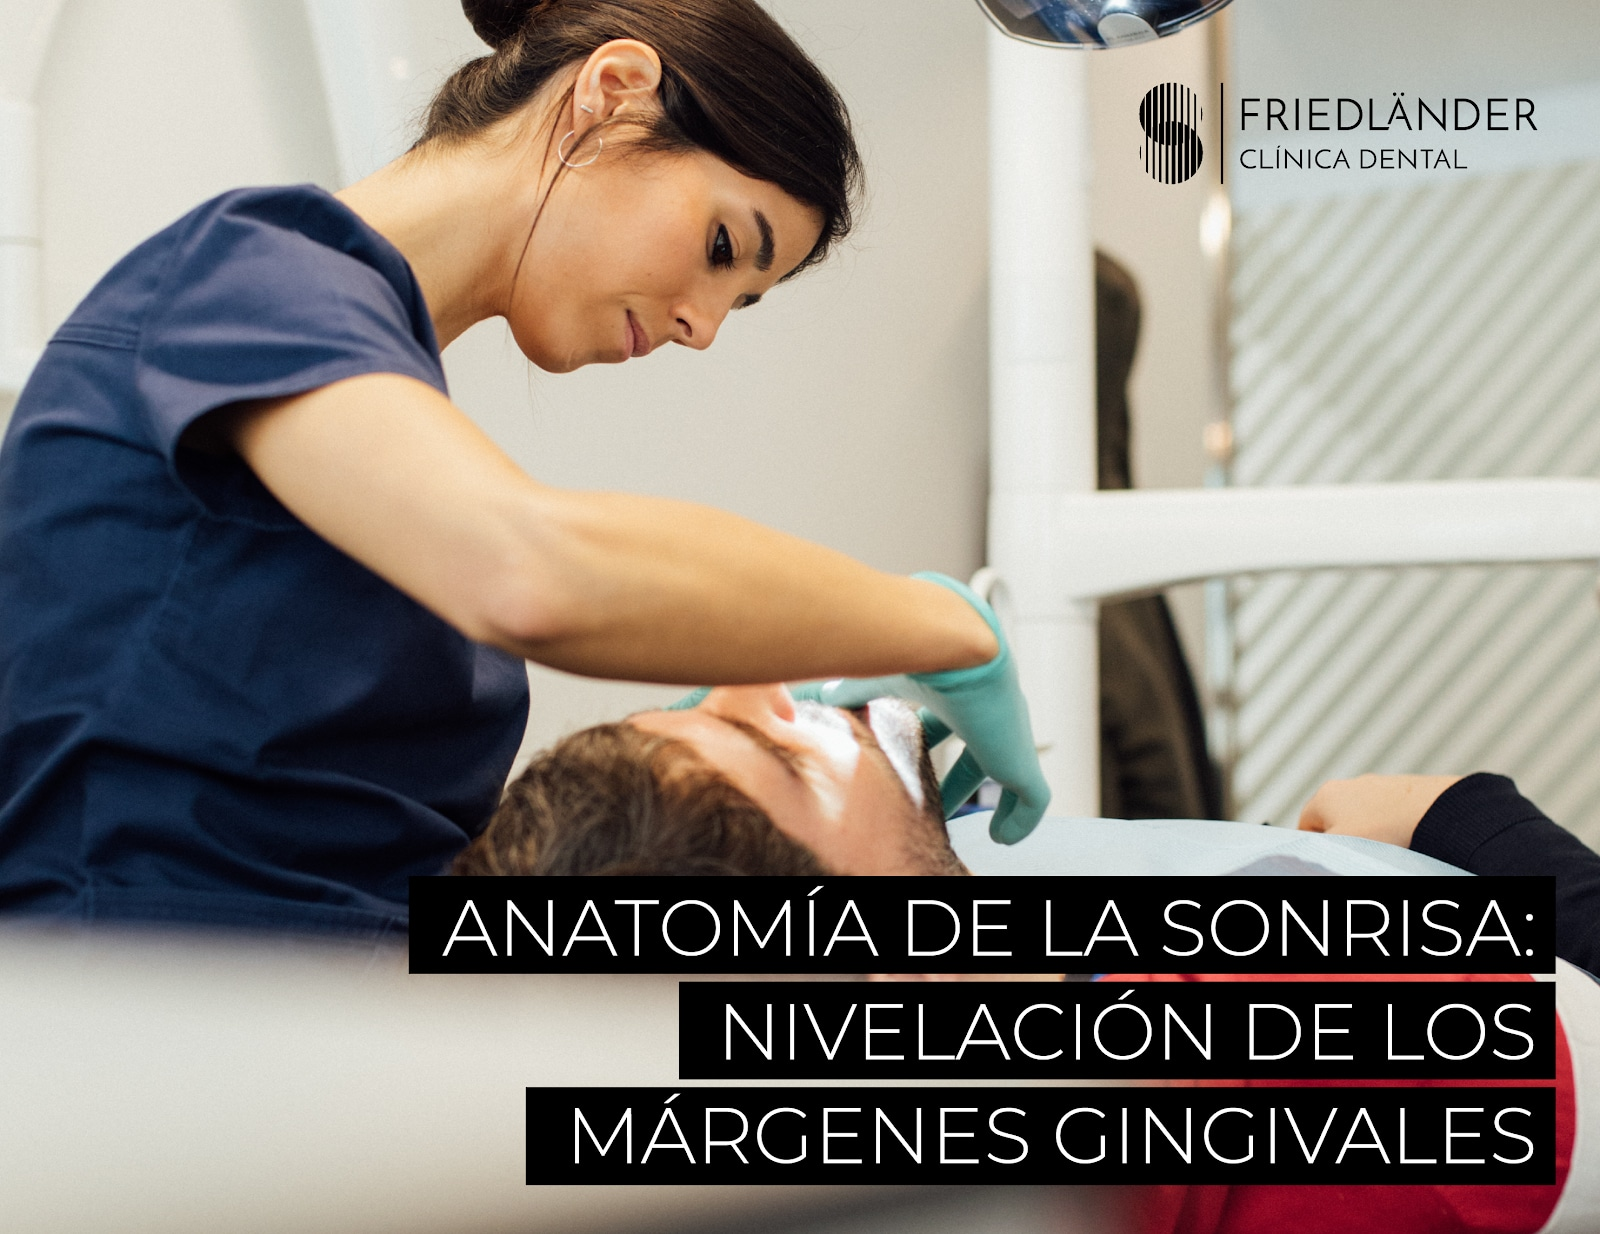 márgenes gingivales